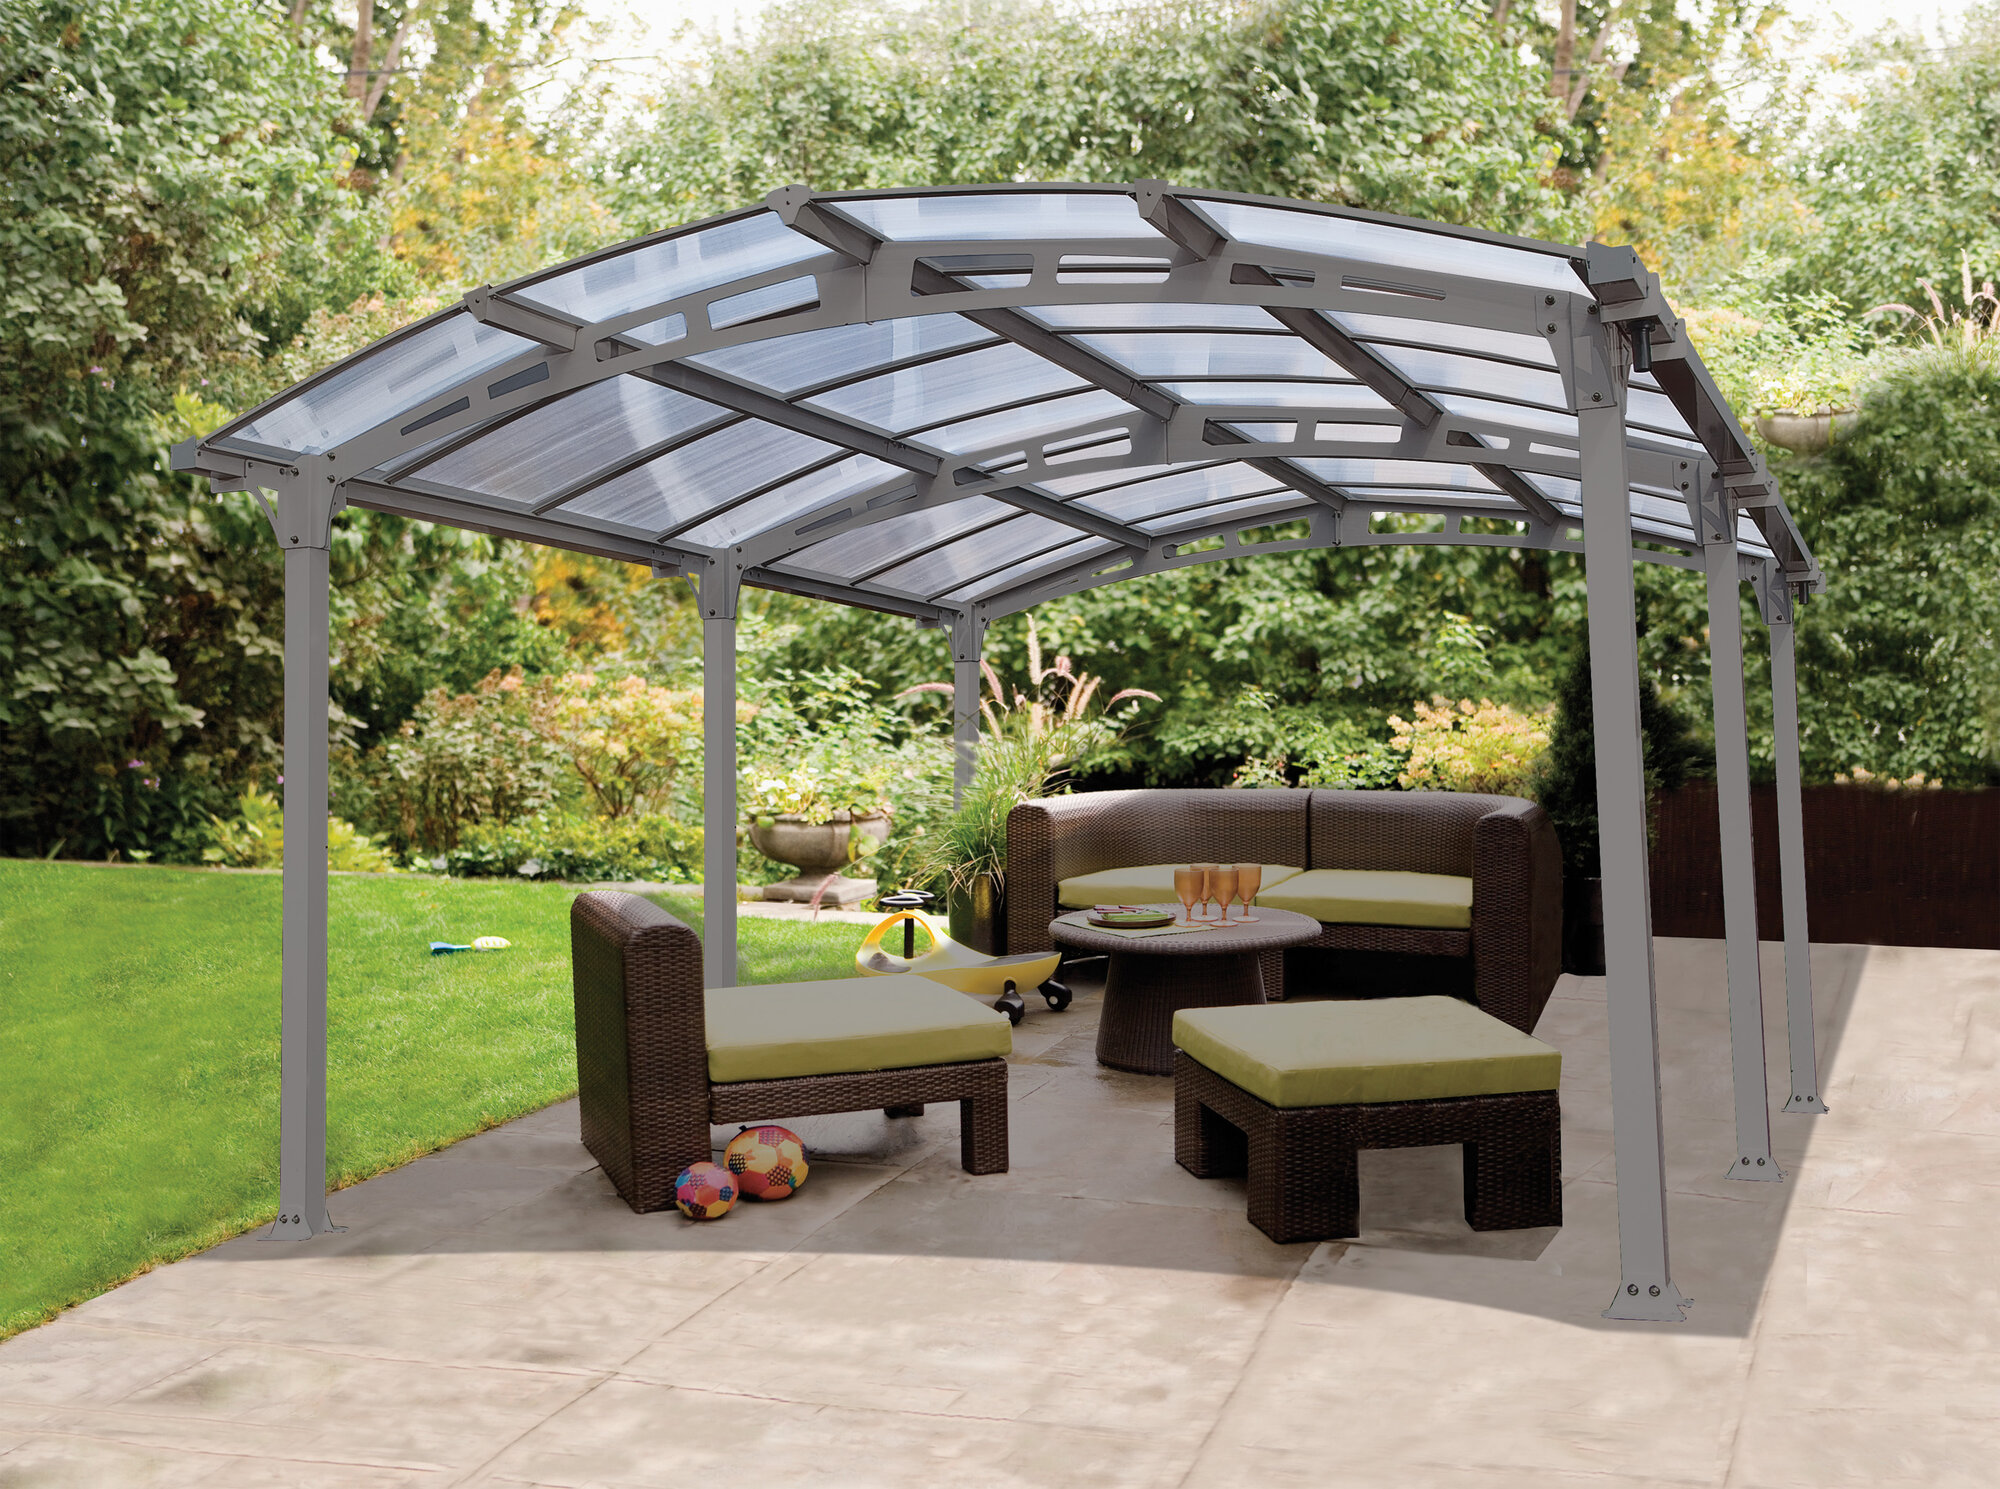 Outdoor Carport Canopy : New arcadia carport patio cover kit garage vehicle housing